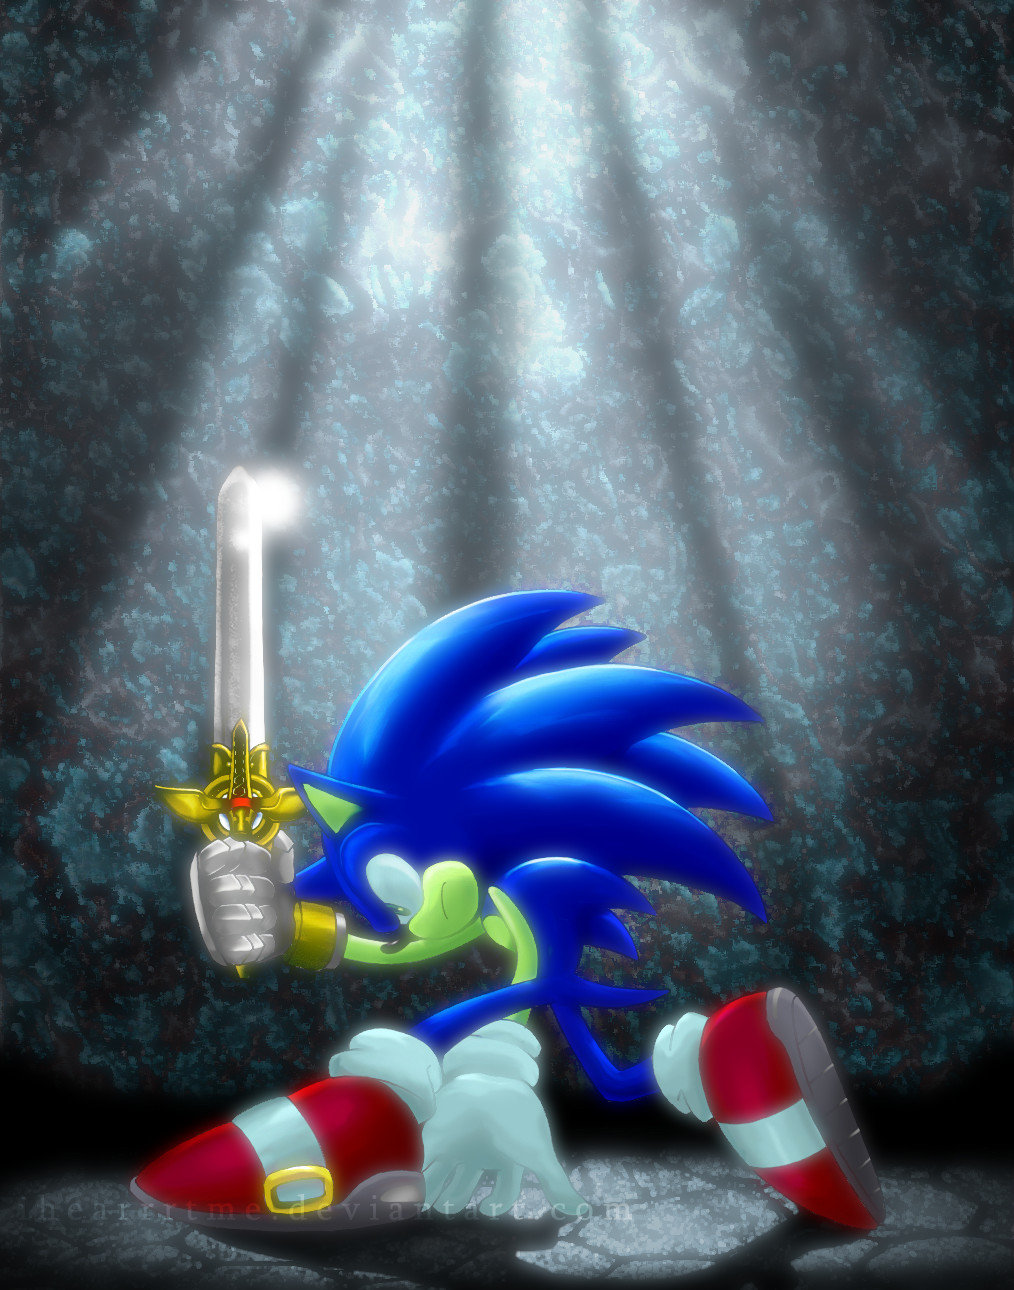 http://rozup.ir/view/1573179/sonic_and_the_black_knight_by_ihearrrtme.jpg